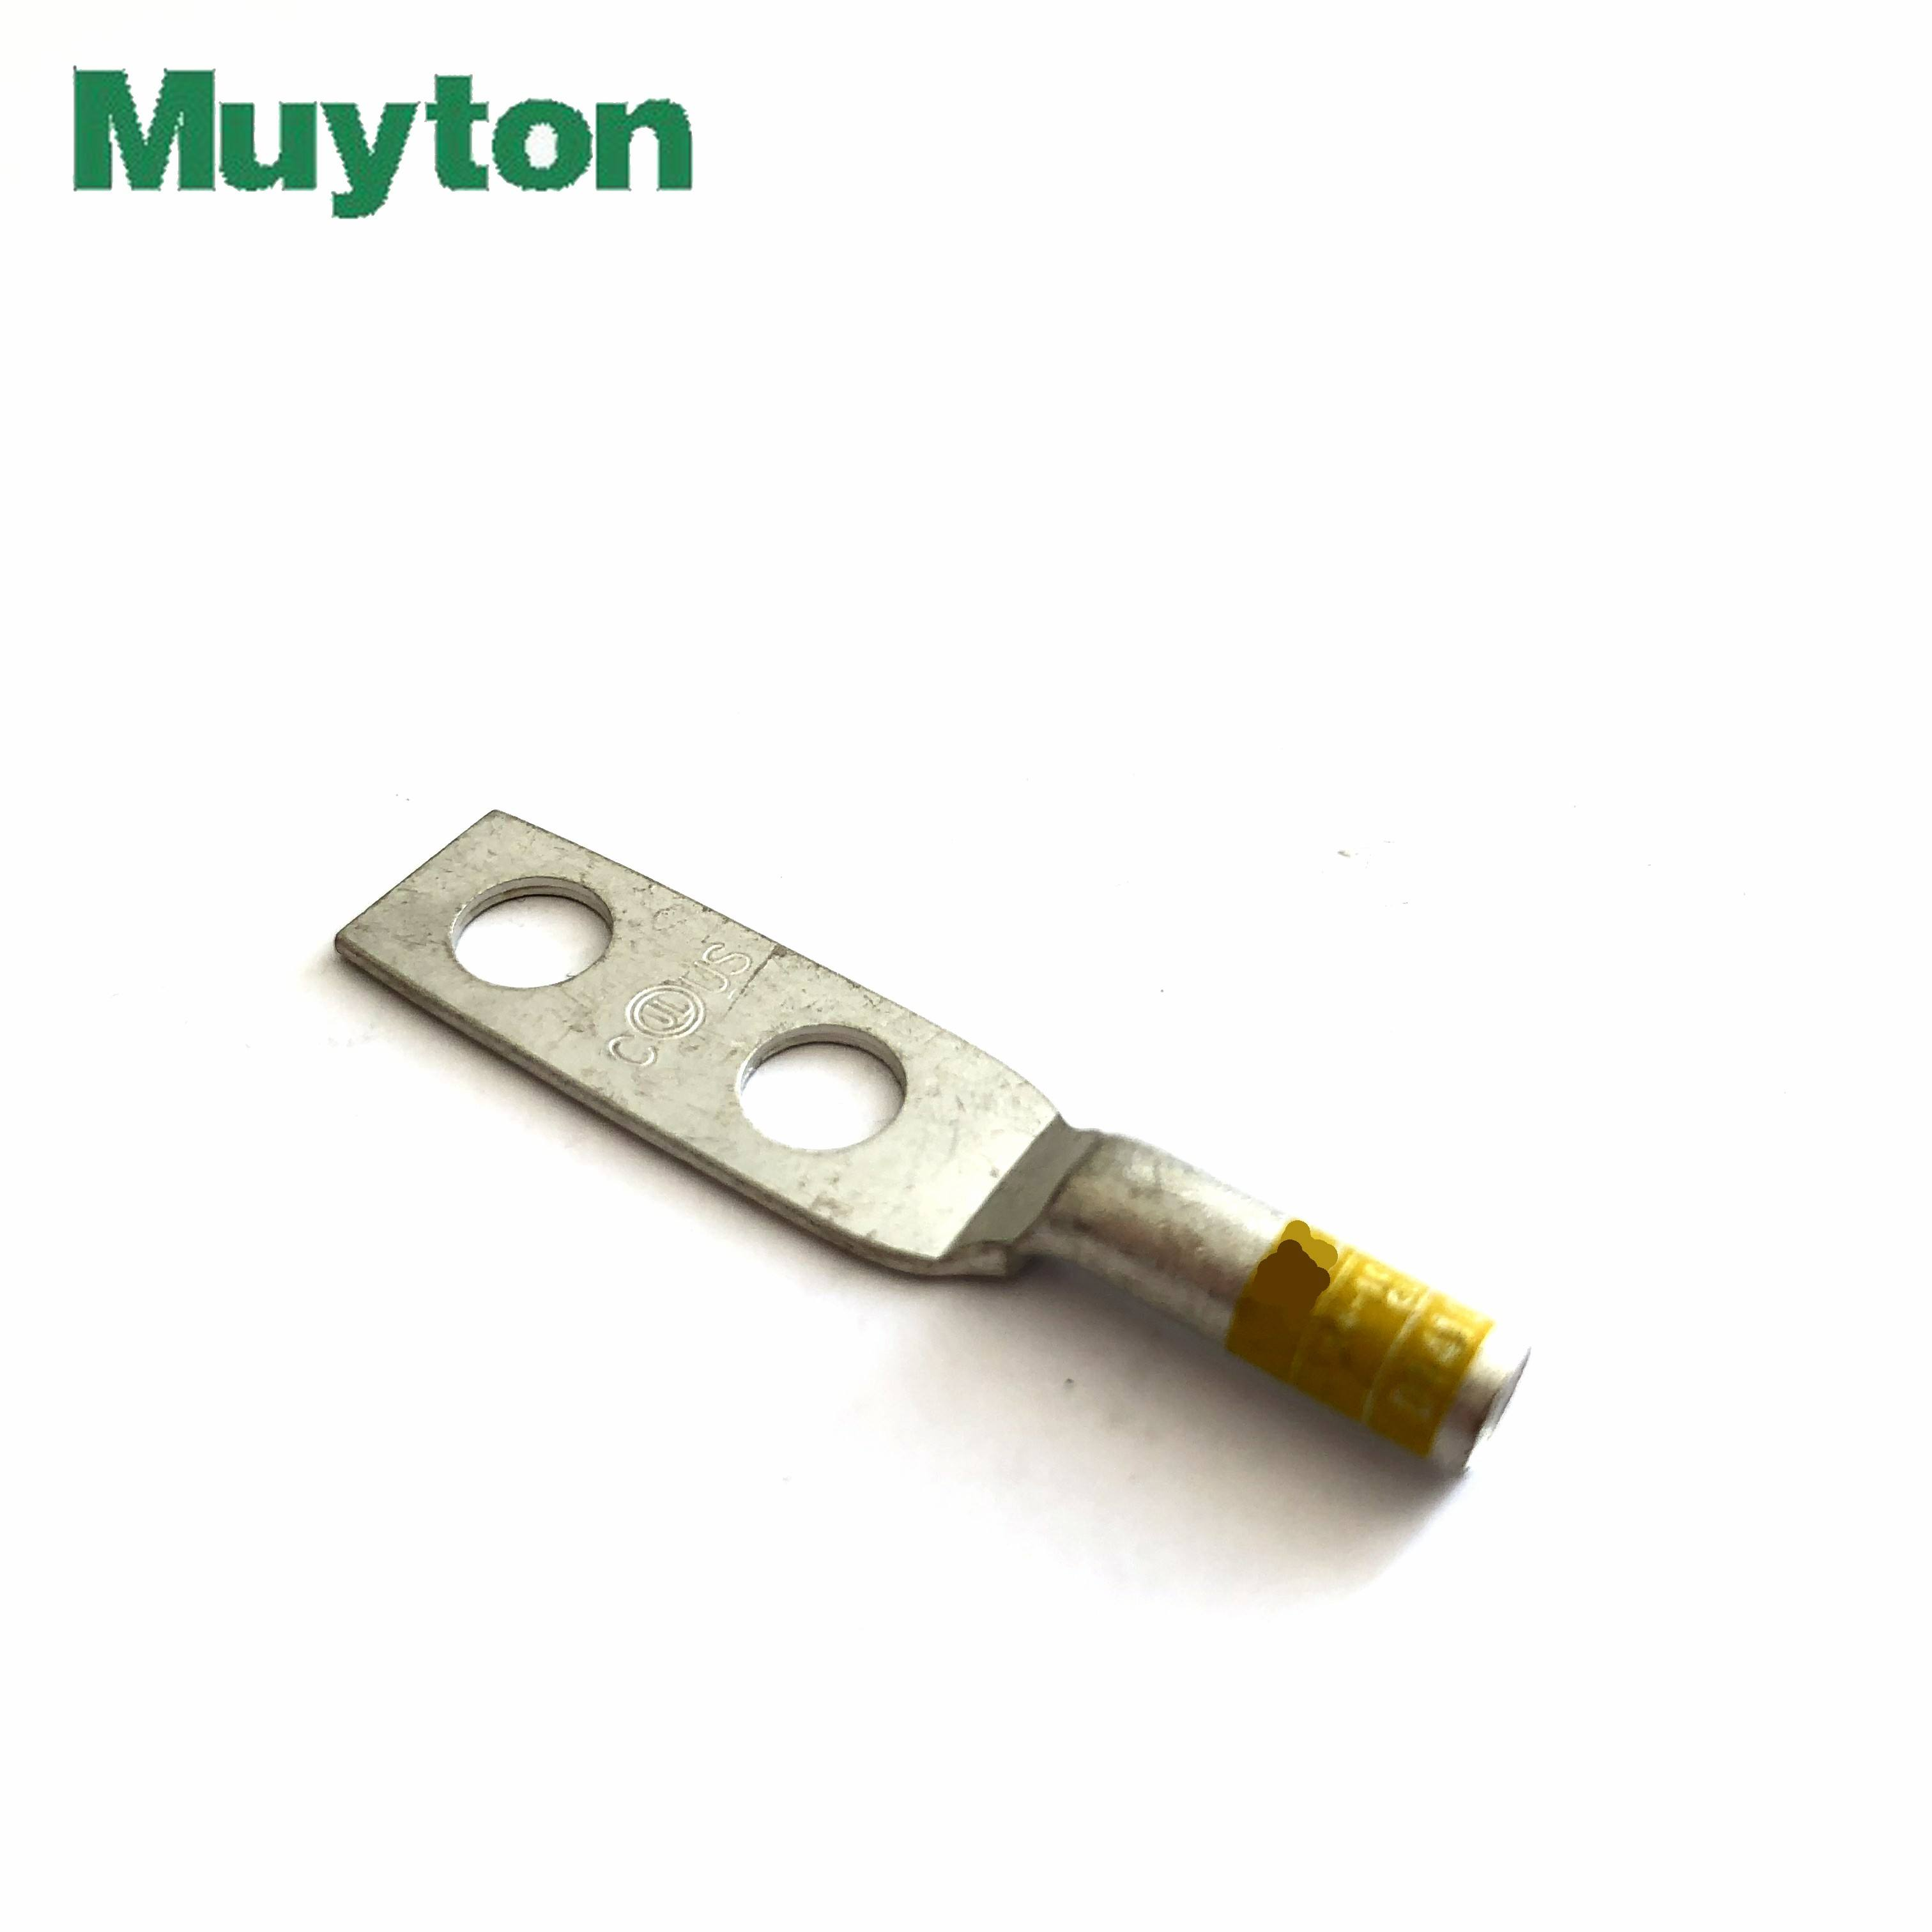 14 AWG yellow cable copper compression connect lug